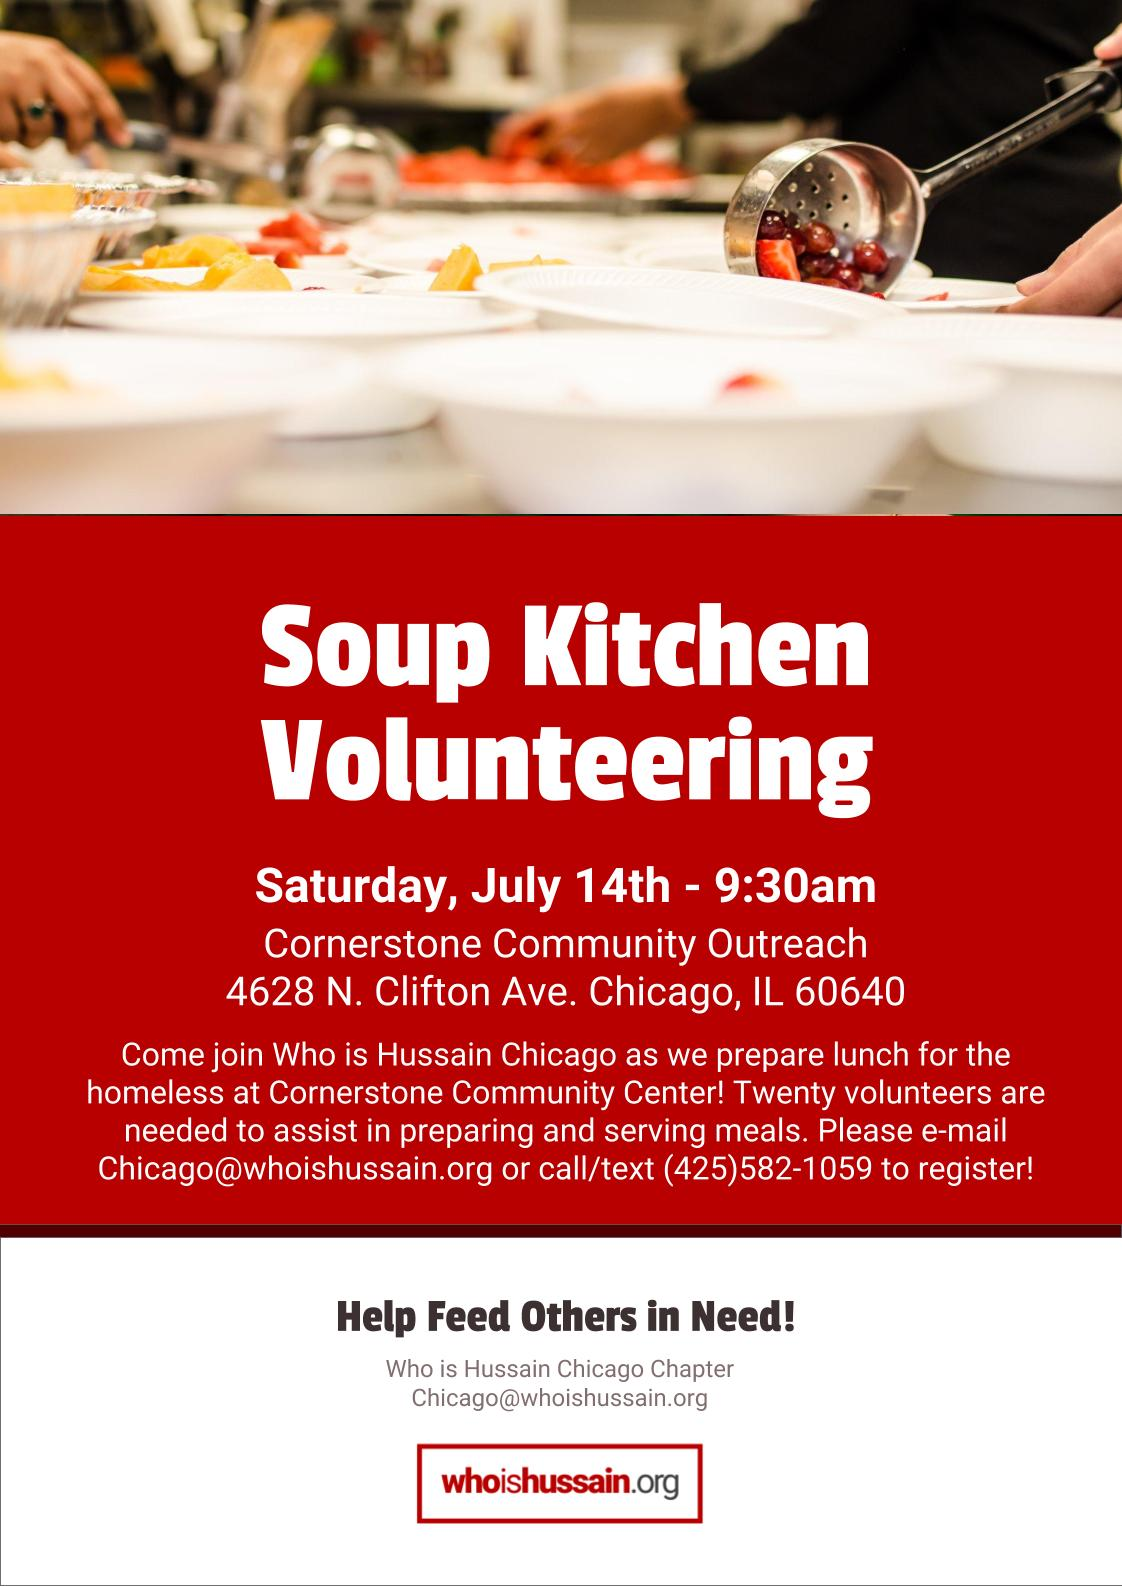 Chicago Soup Kitchen Volunteering - Who is Hussain